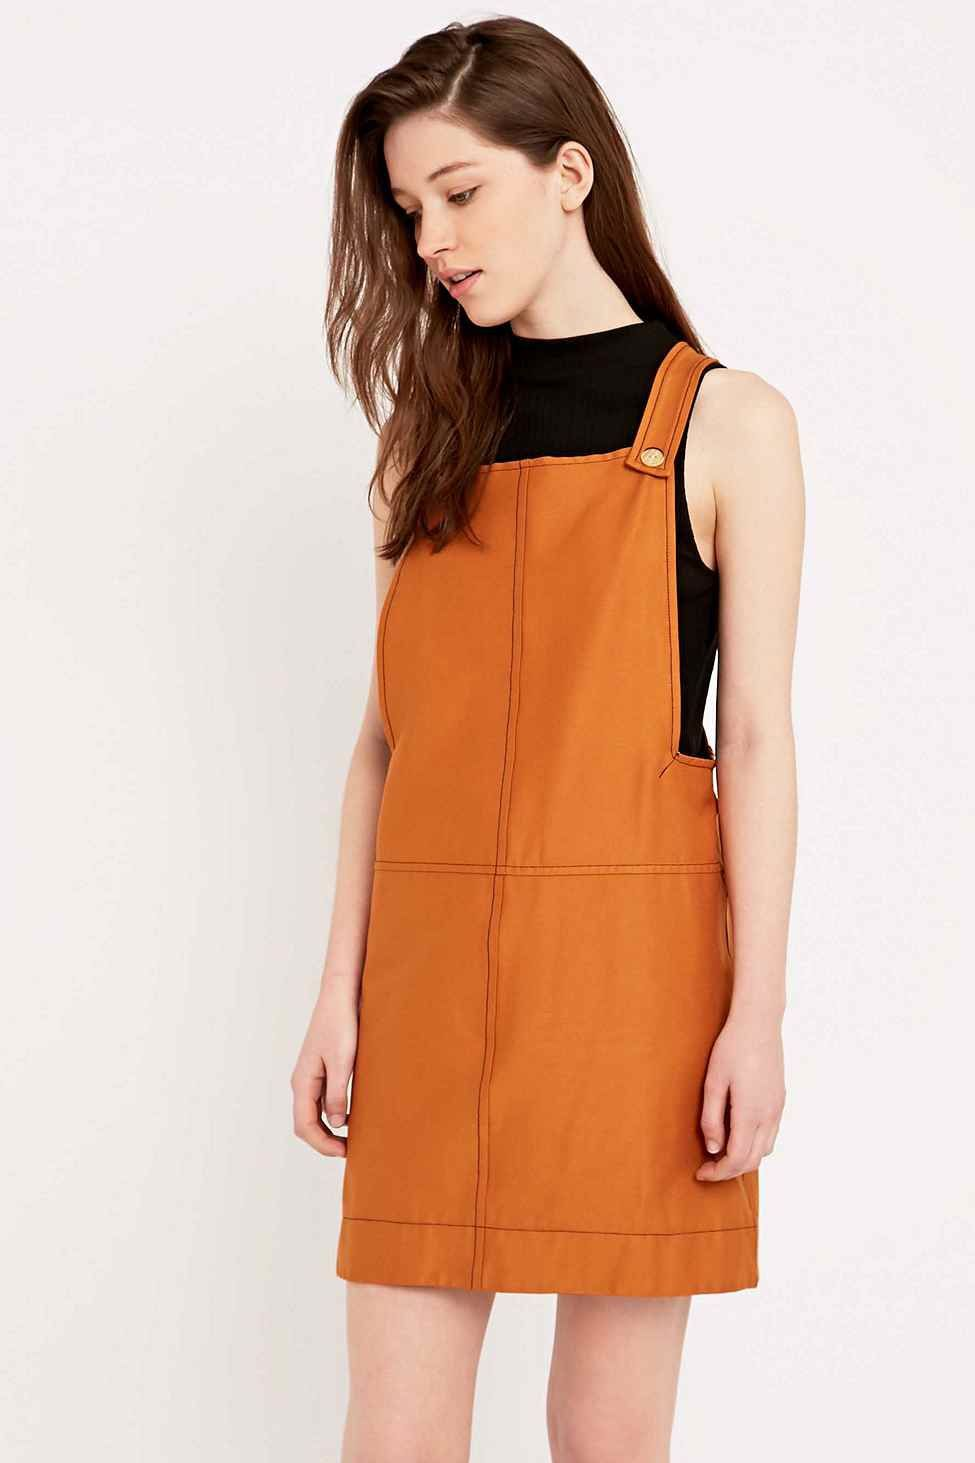 Robe chasubl Cooperative by Urban Outfitters, soldé 52 €